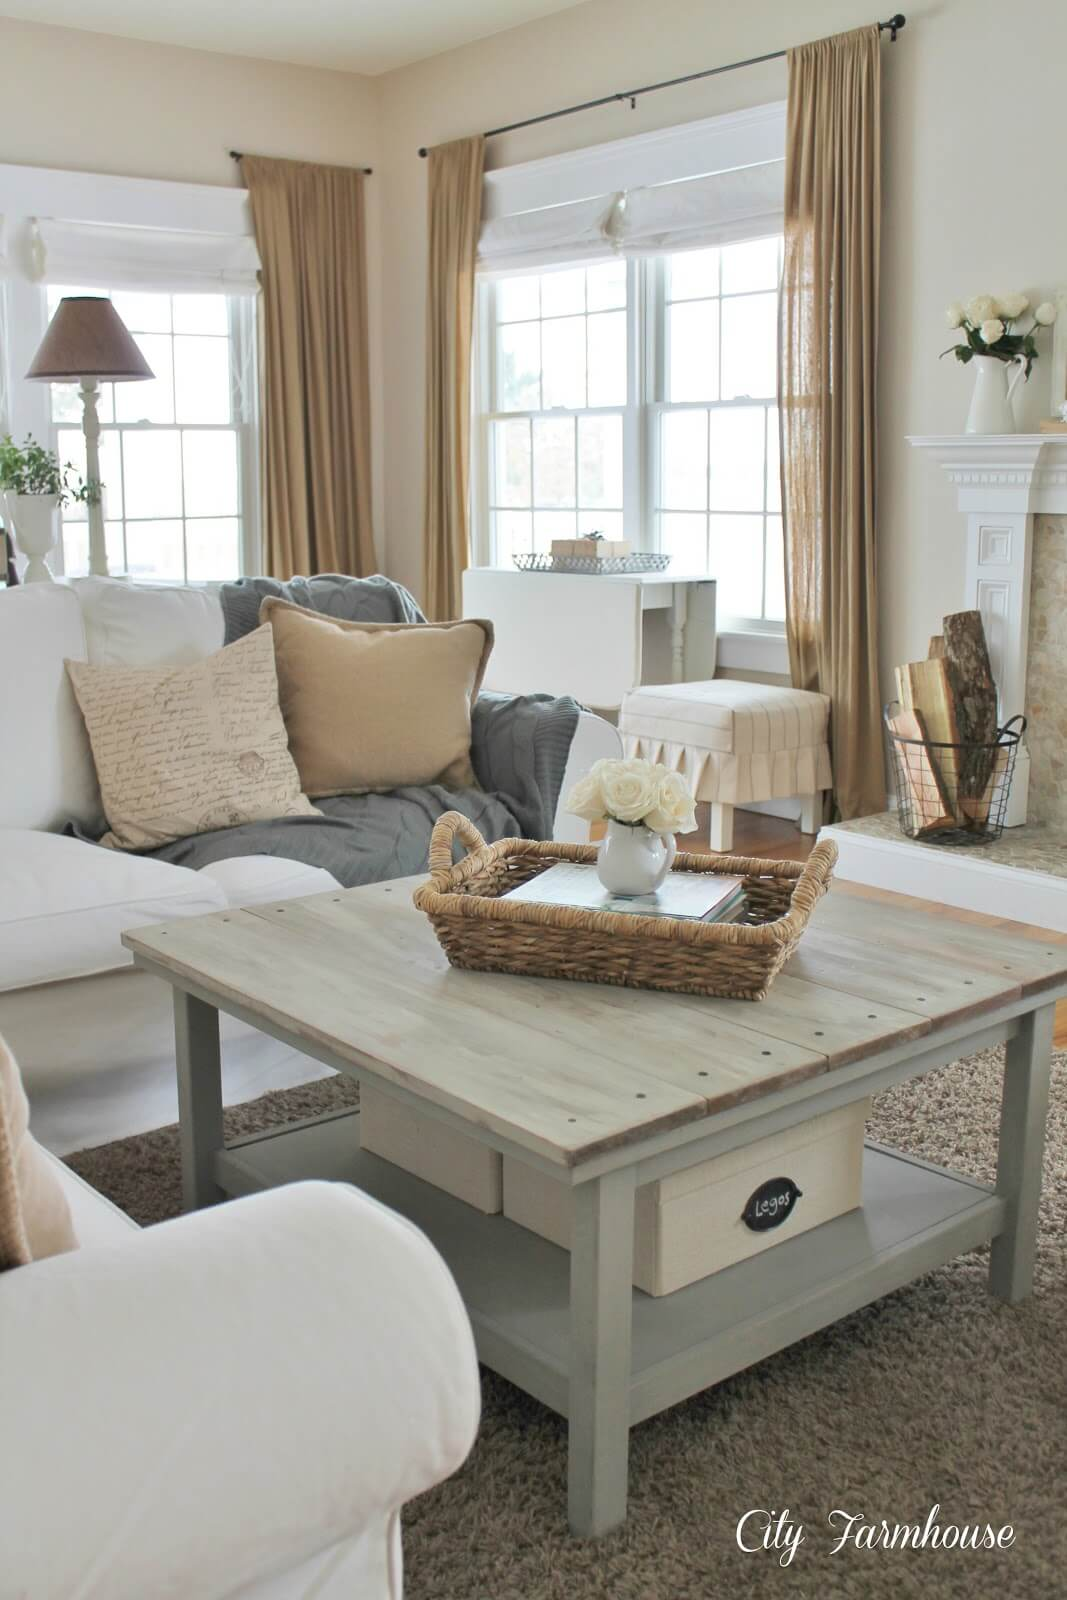 Cozy French Provincial Inspired Space